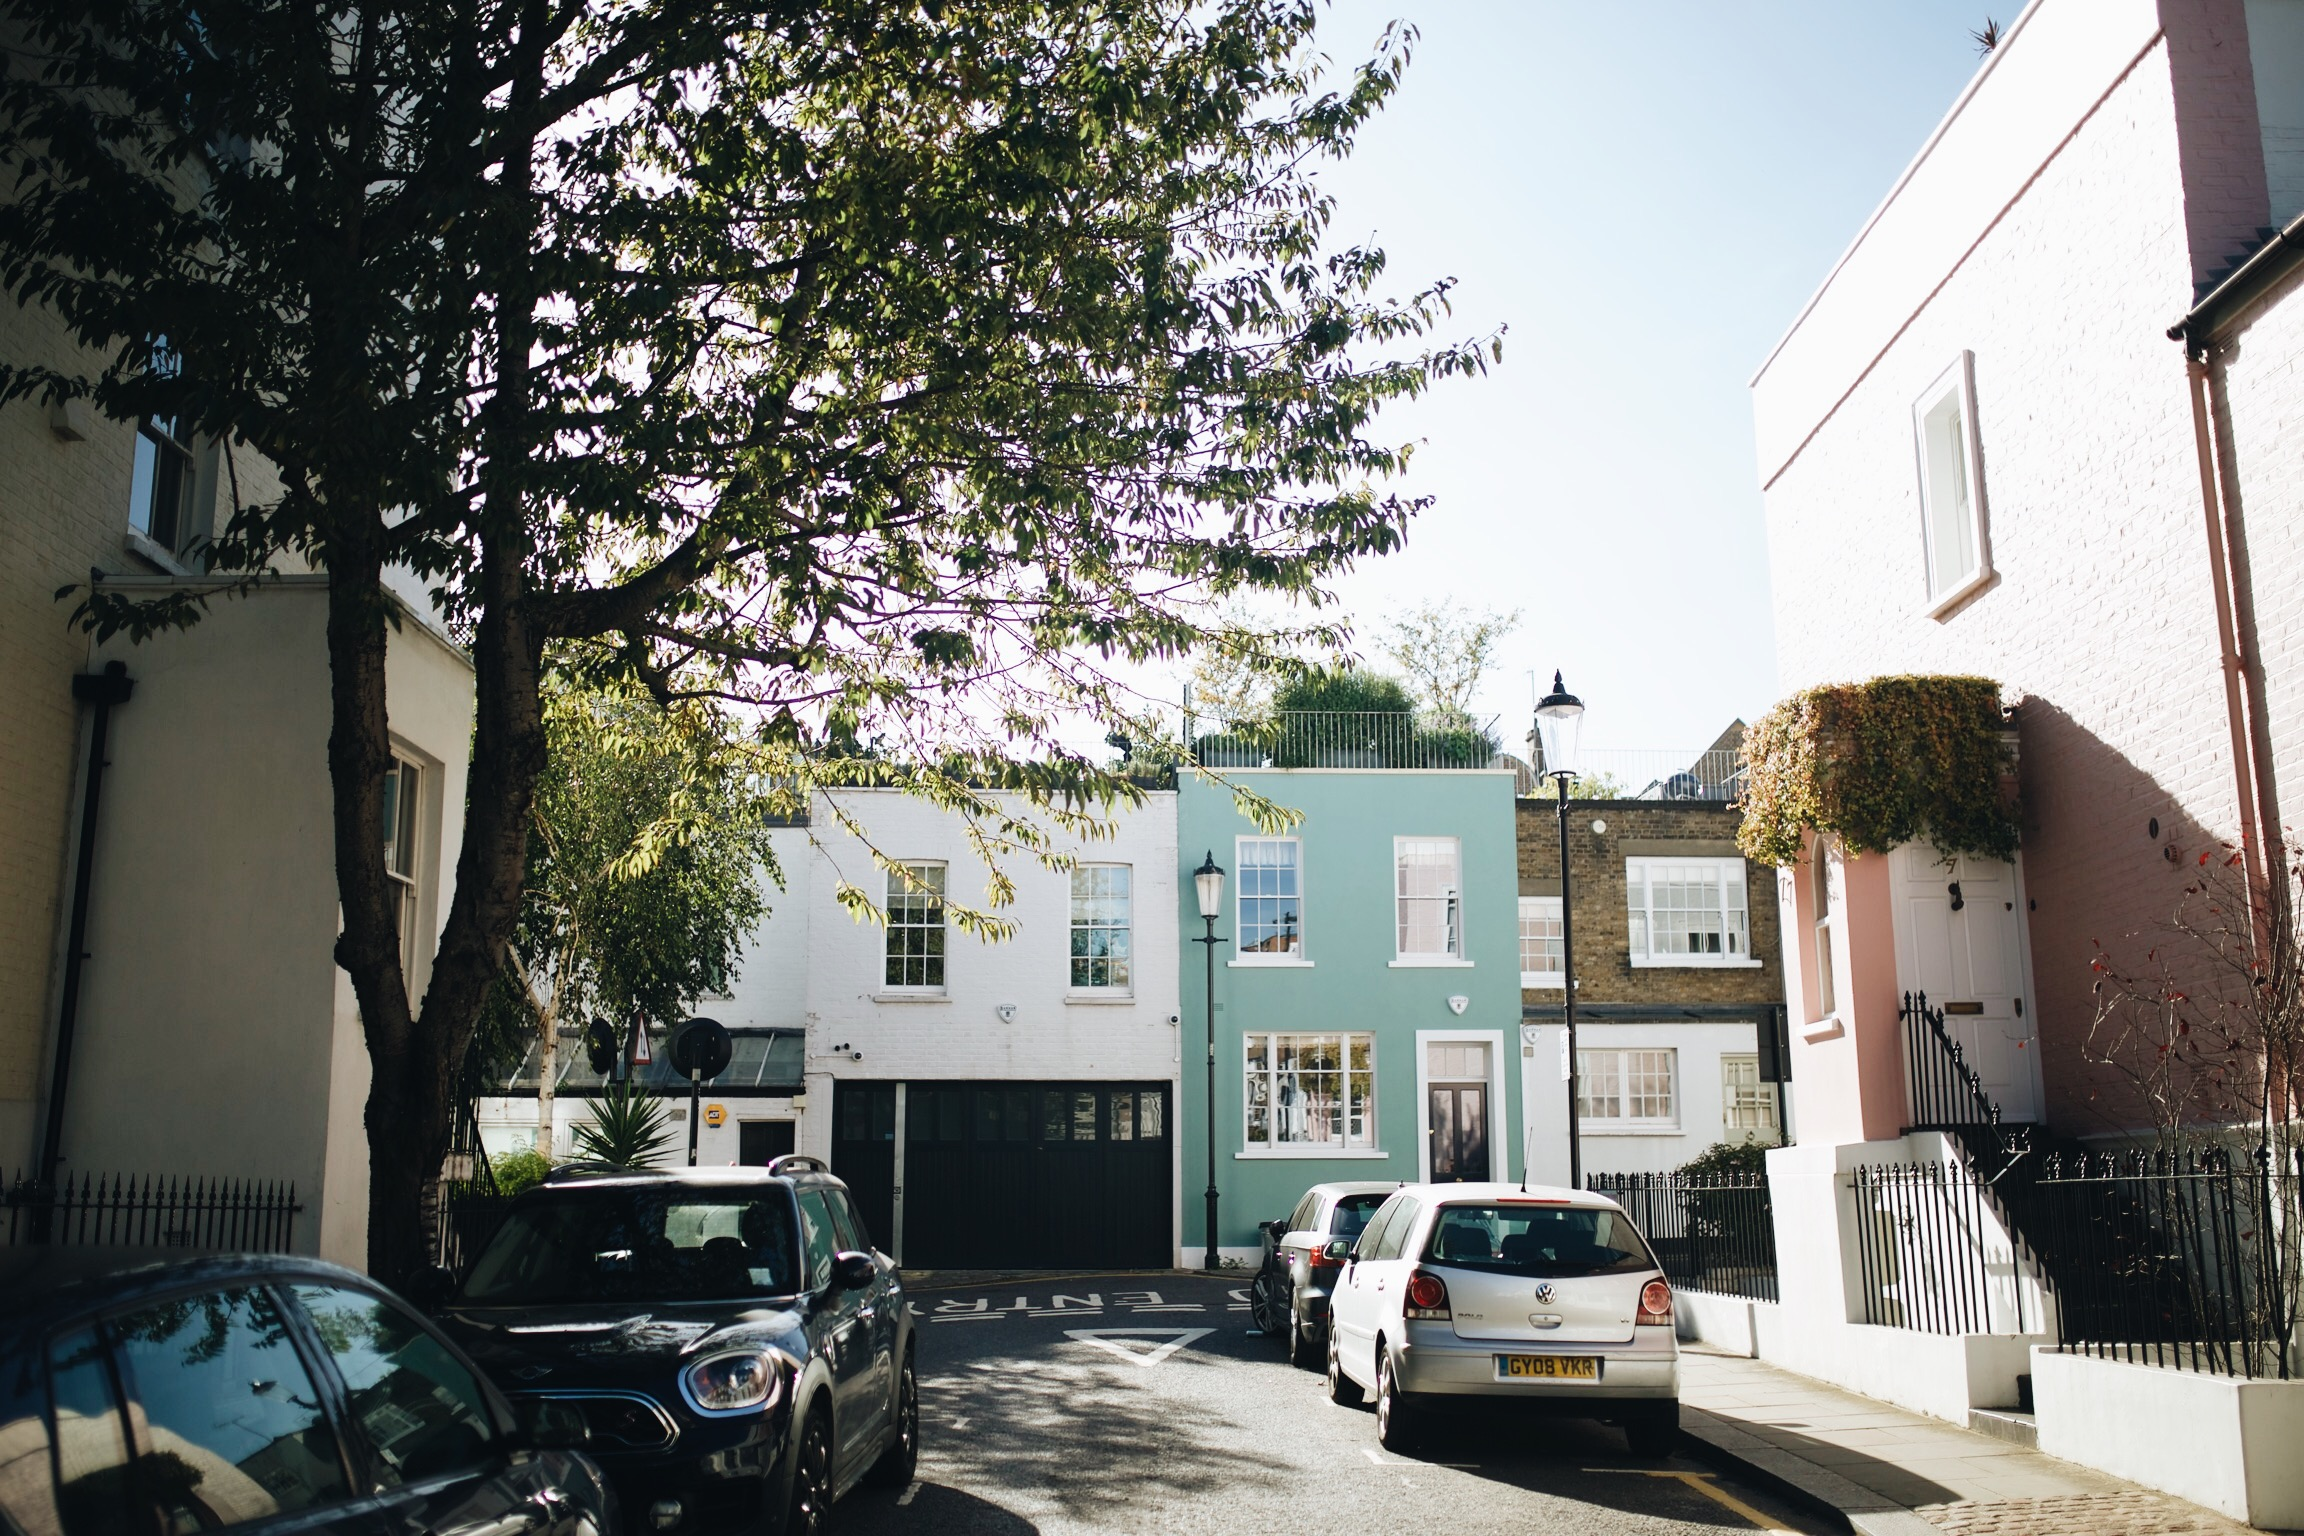 NottingHill-incontournable-Londres.JPG